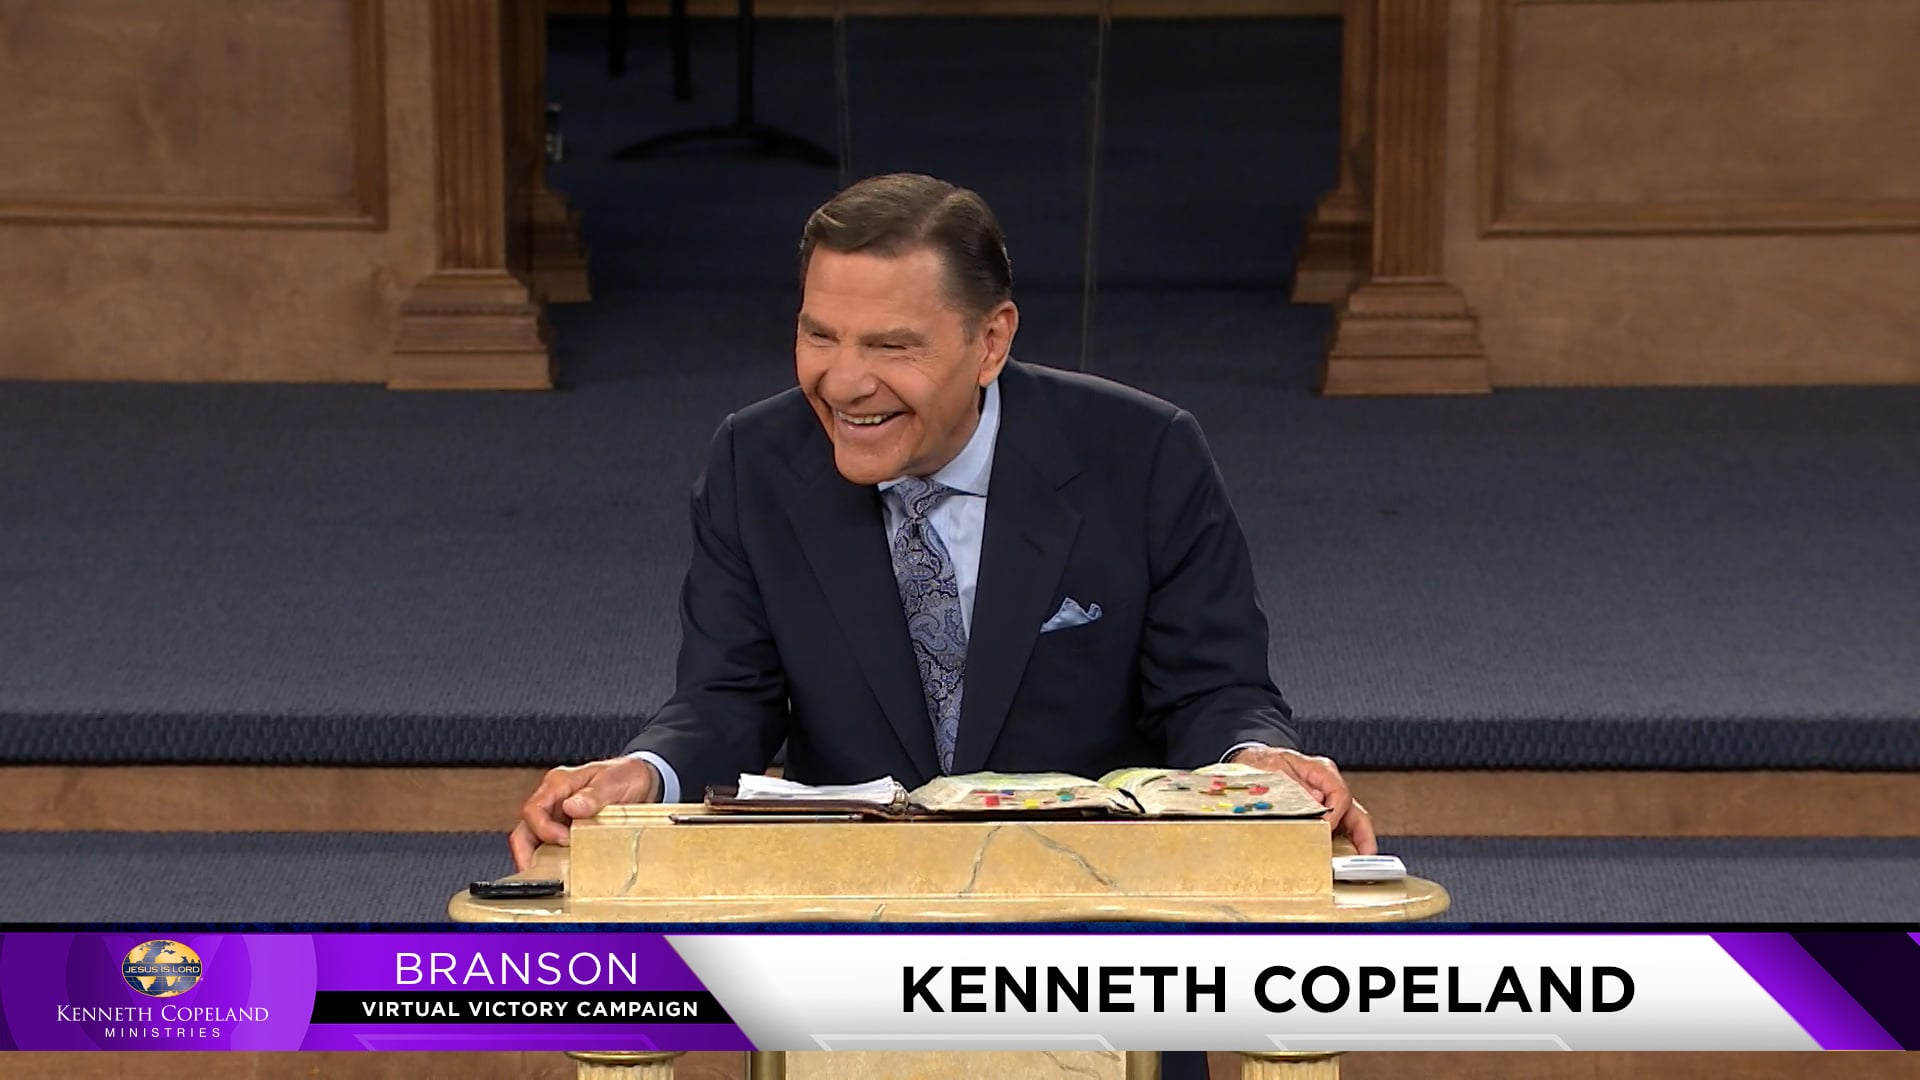 At the 2021 Branson Virtual Victory Campaign, Kenneth Copeland shares how easy it is to receive healing from our good God. You don't have to choose between healing OR salvation. It's both! It's God's desire that you have a life worth living including health. Jesus preached that God is good and He heals!